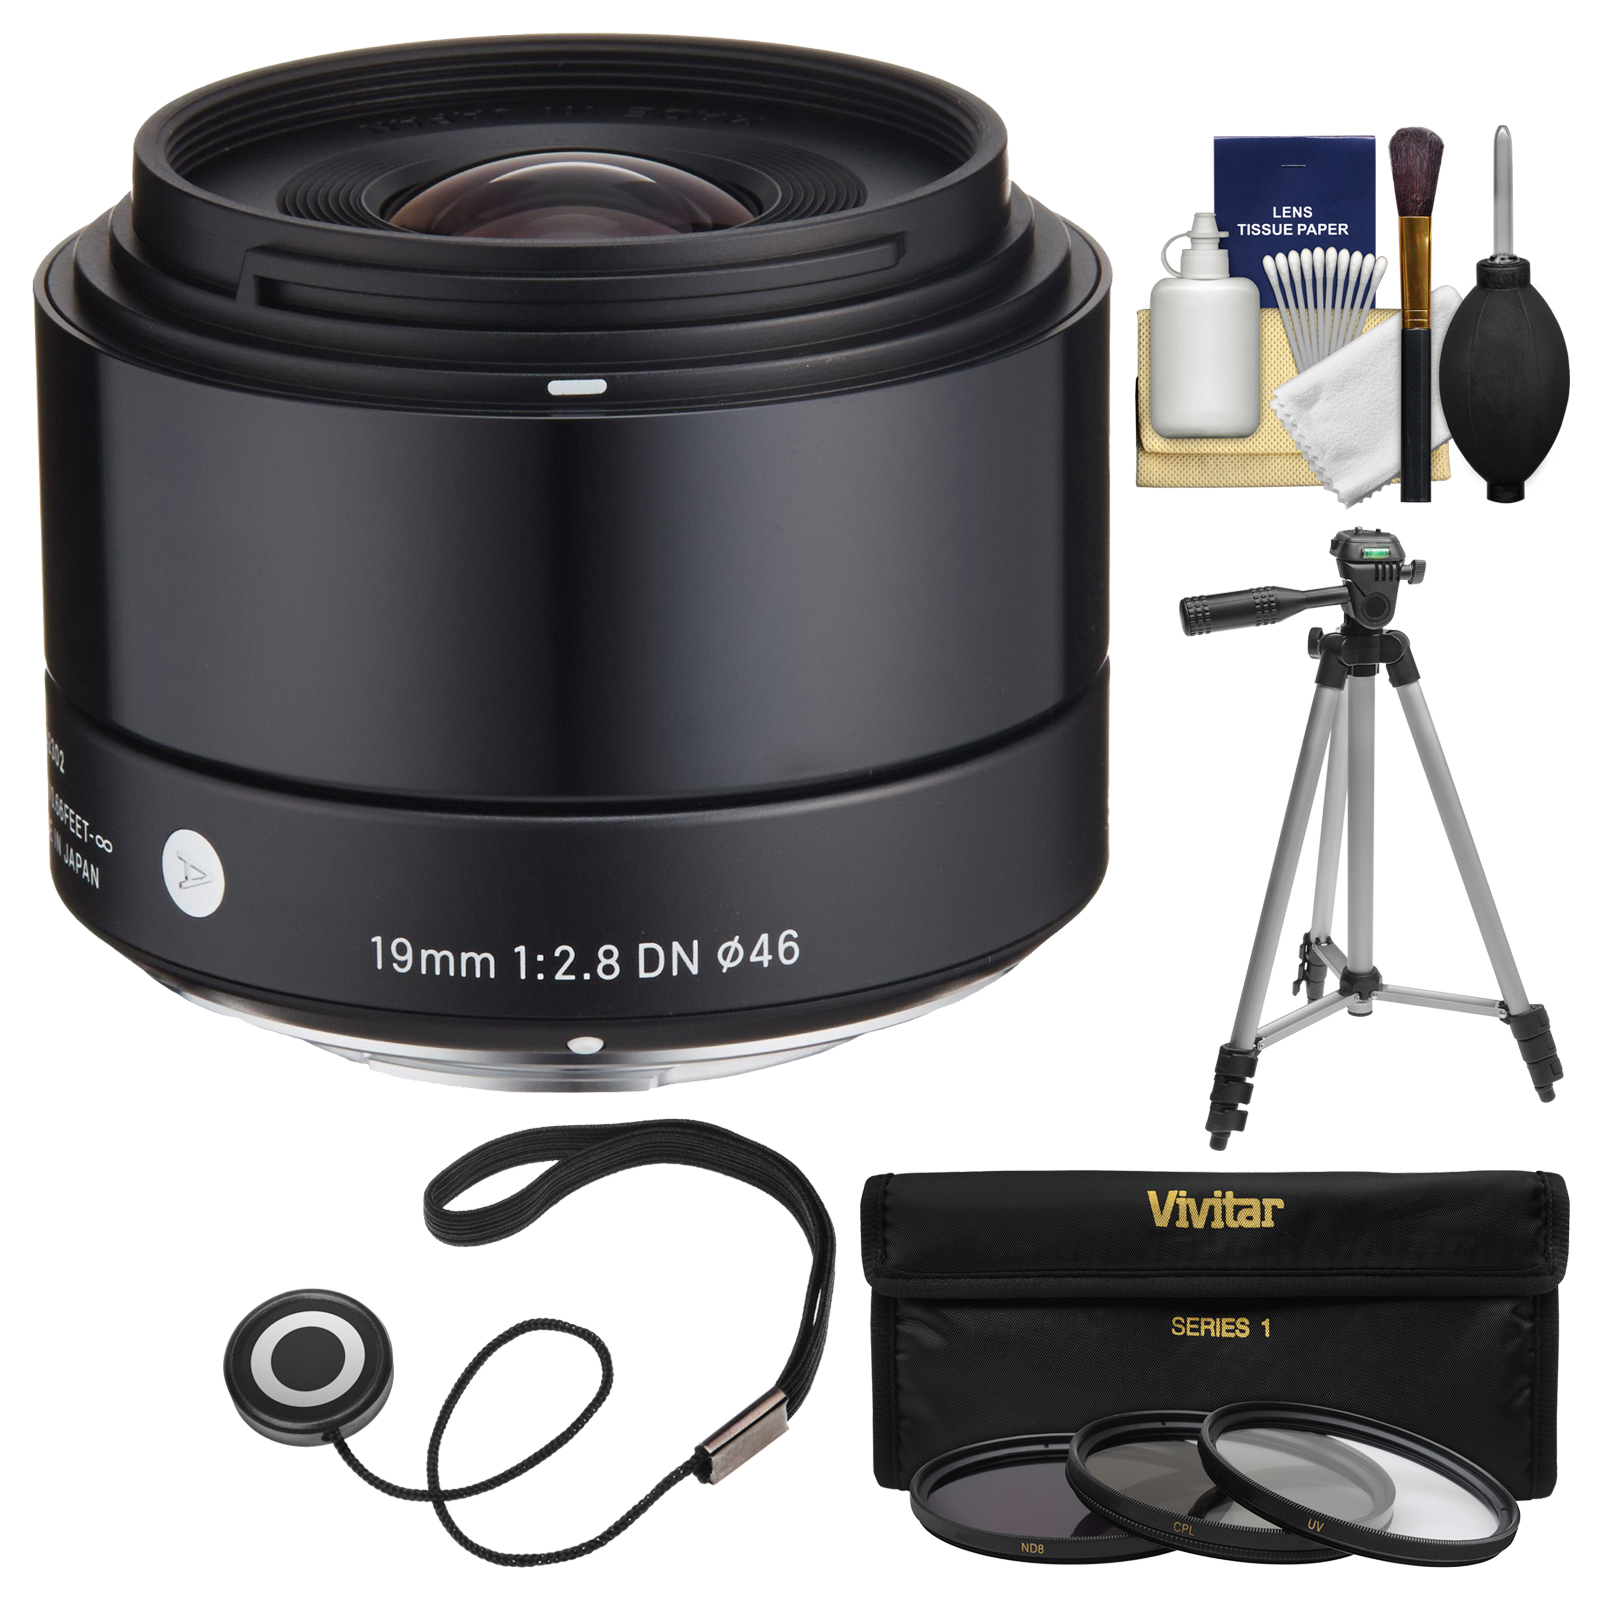 Sigma 19mm f/2.8 EX DN Art Lens with 3 UV/CPL/ND8 Filters + Tripod + Kit for Olympus / Panasonic Micro 4/3 Digital Cameras